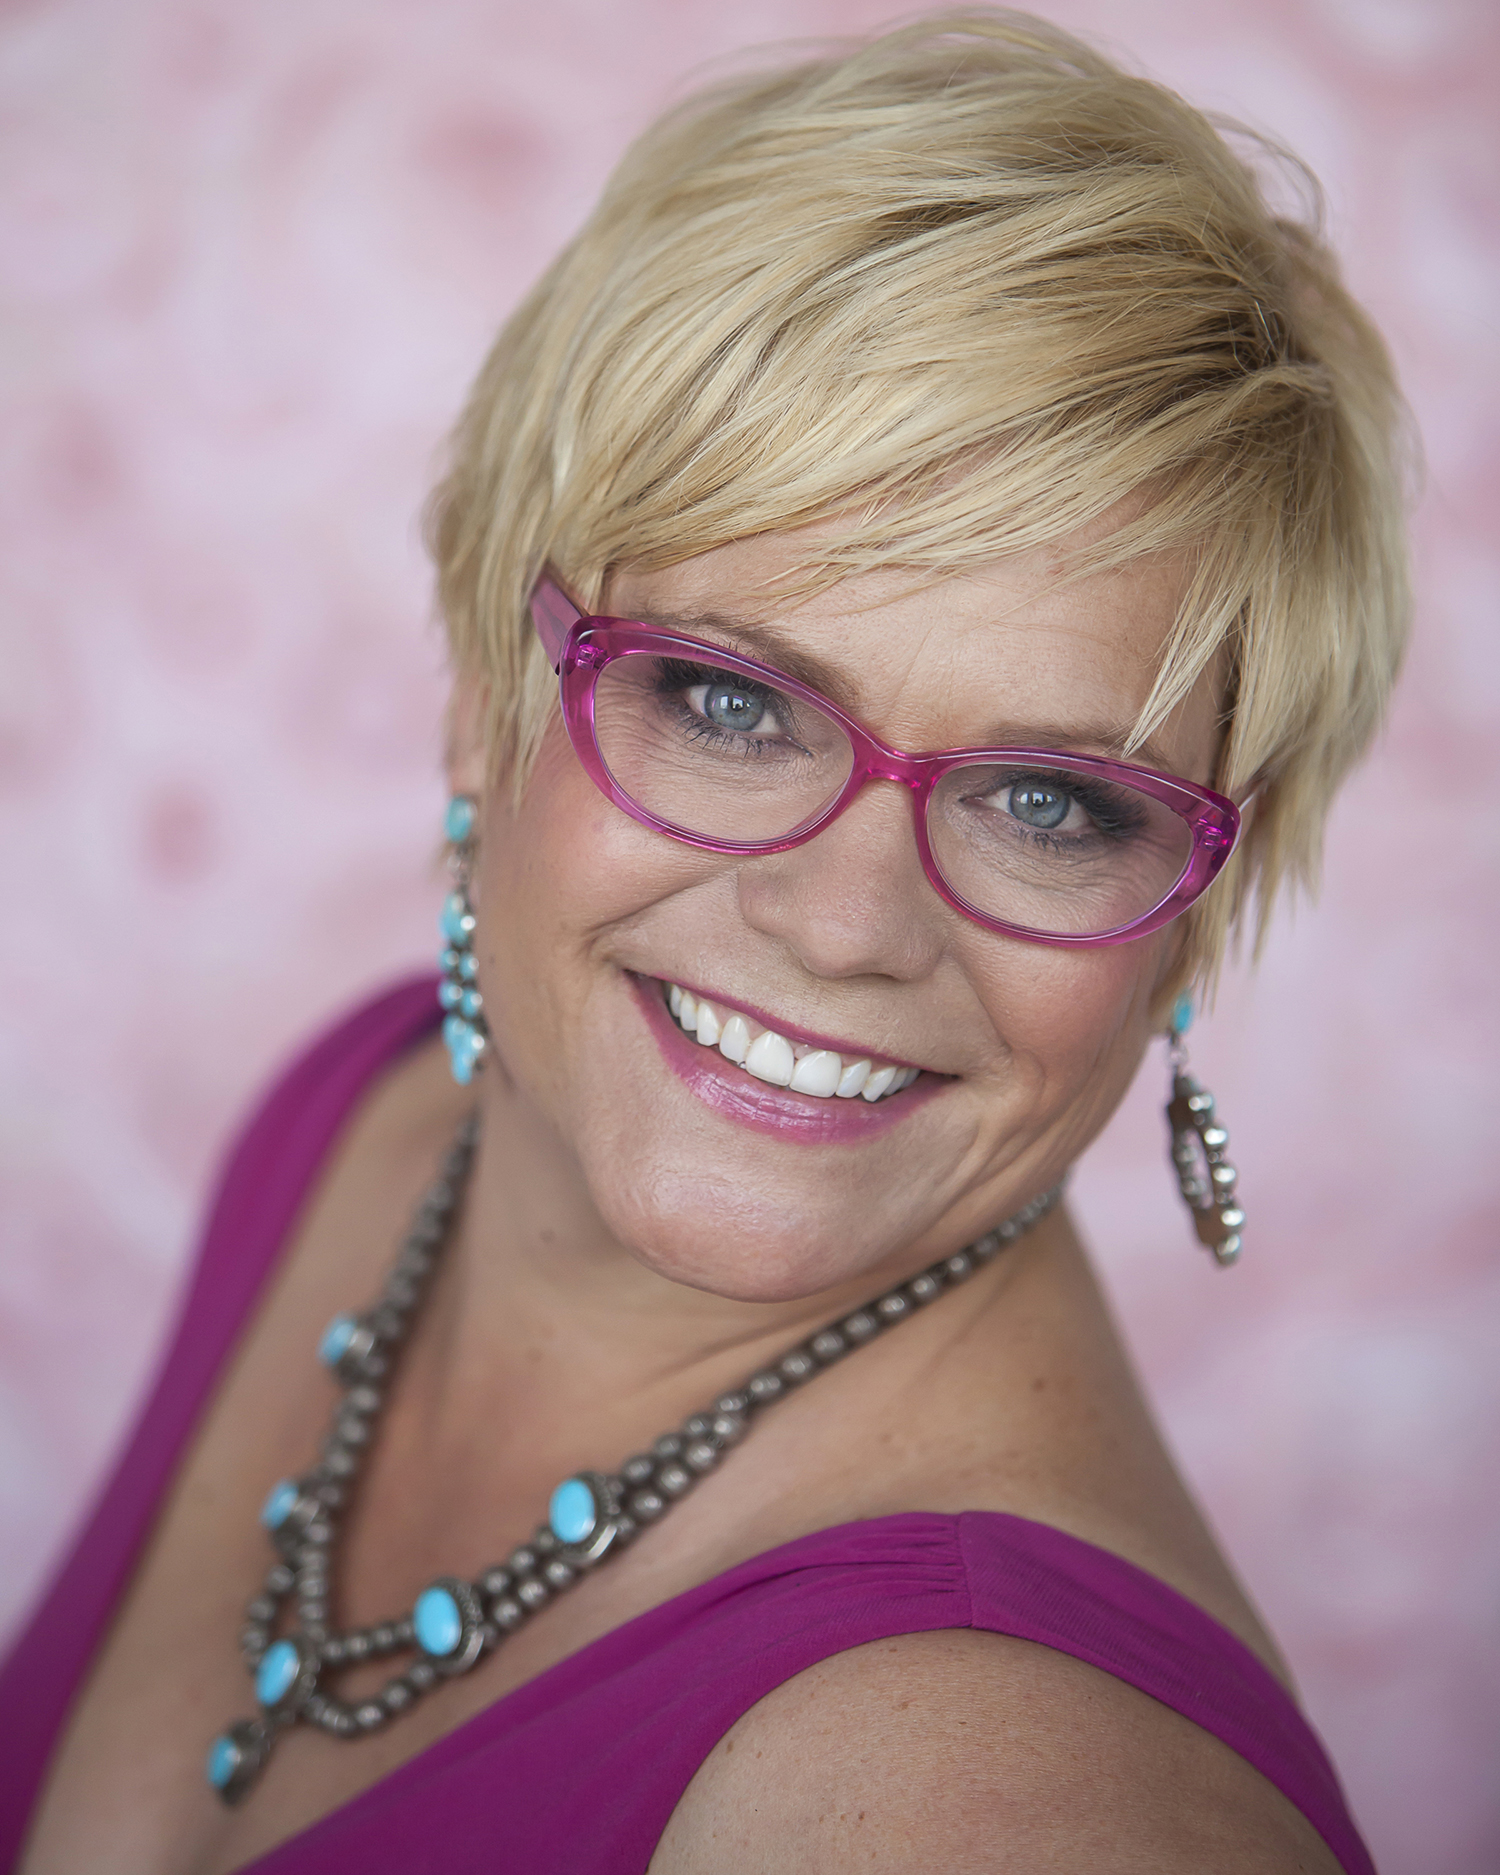 personal branding headshots for blogger in natural light studio in Denver with photographer Jennifer Koskinen